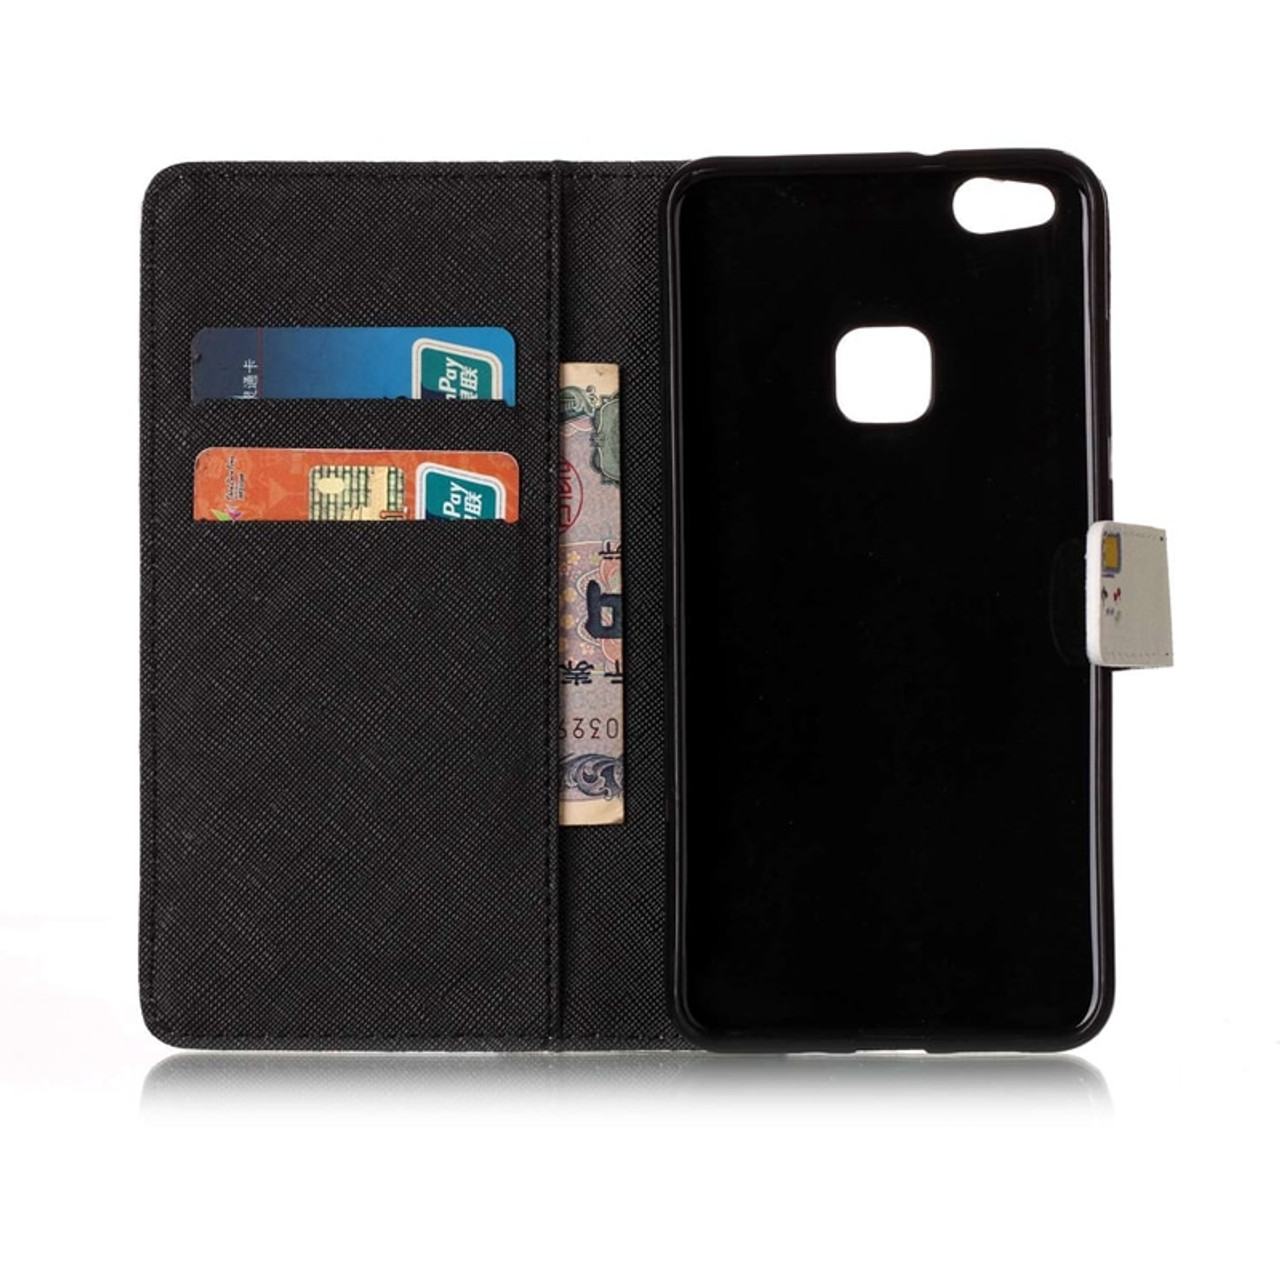 51ce1cef3794f8 ... Phone Etui For Coque Huawei P10 Lite Case Luxury Leather Wallet Flip  Cover For Huwawei P10 ...